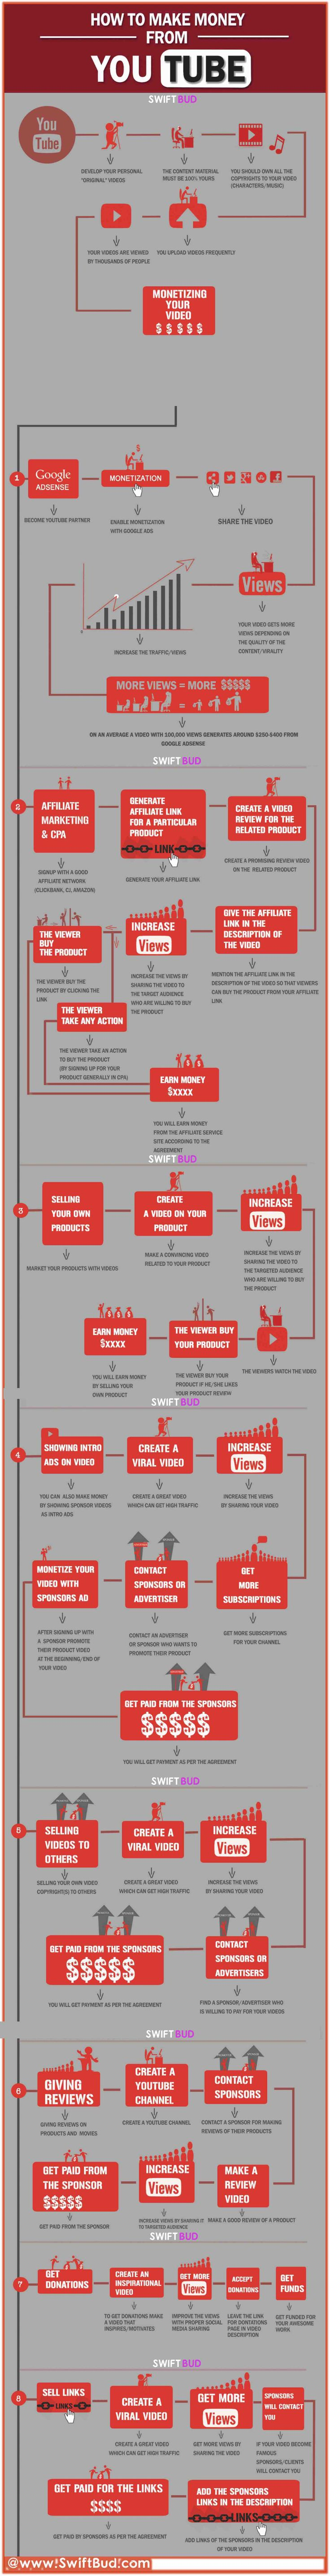 "The infographic ""How To Make Money Online From YouTube"" was presented by: www.SwiftBud.com  T        (...)"